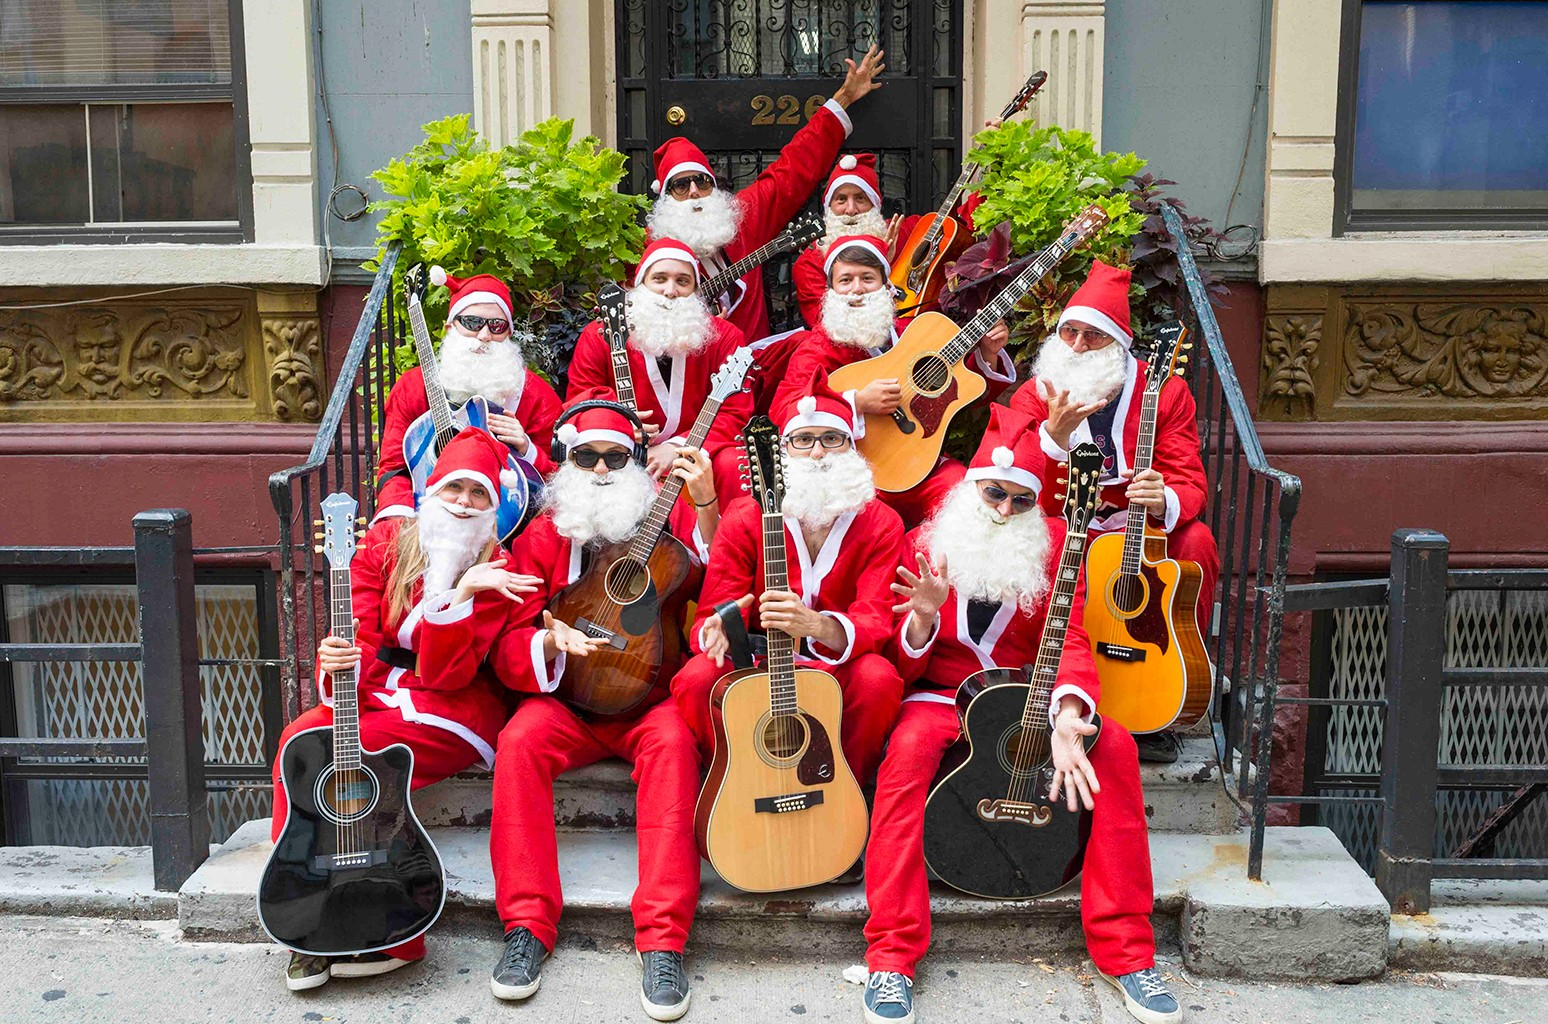 Band of Merrymakers - Tyler Glenn (Neon Trees), Lisa Loeb, Mark McGrath, Constantine Maroulis and more